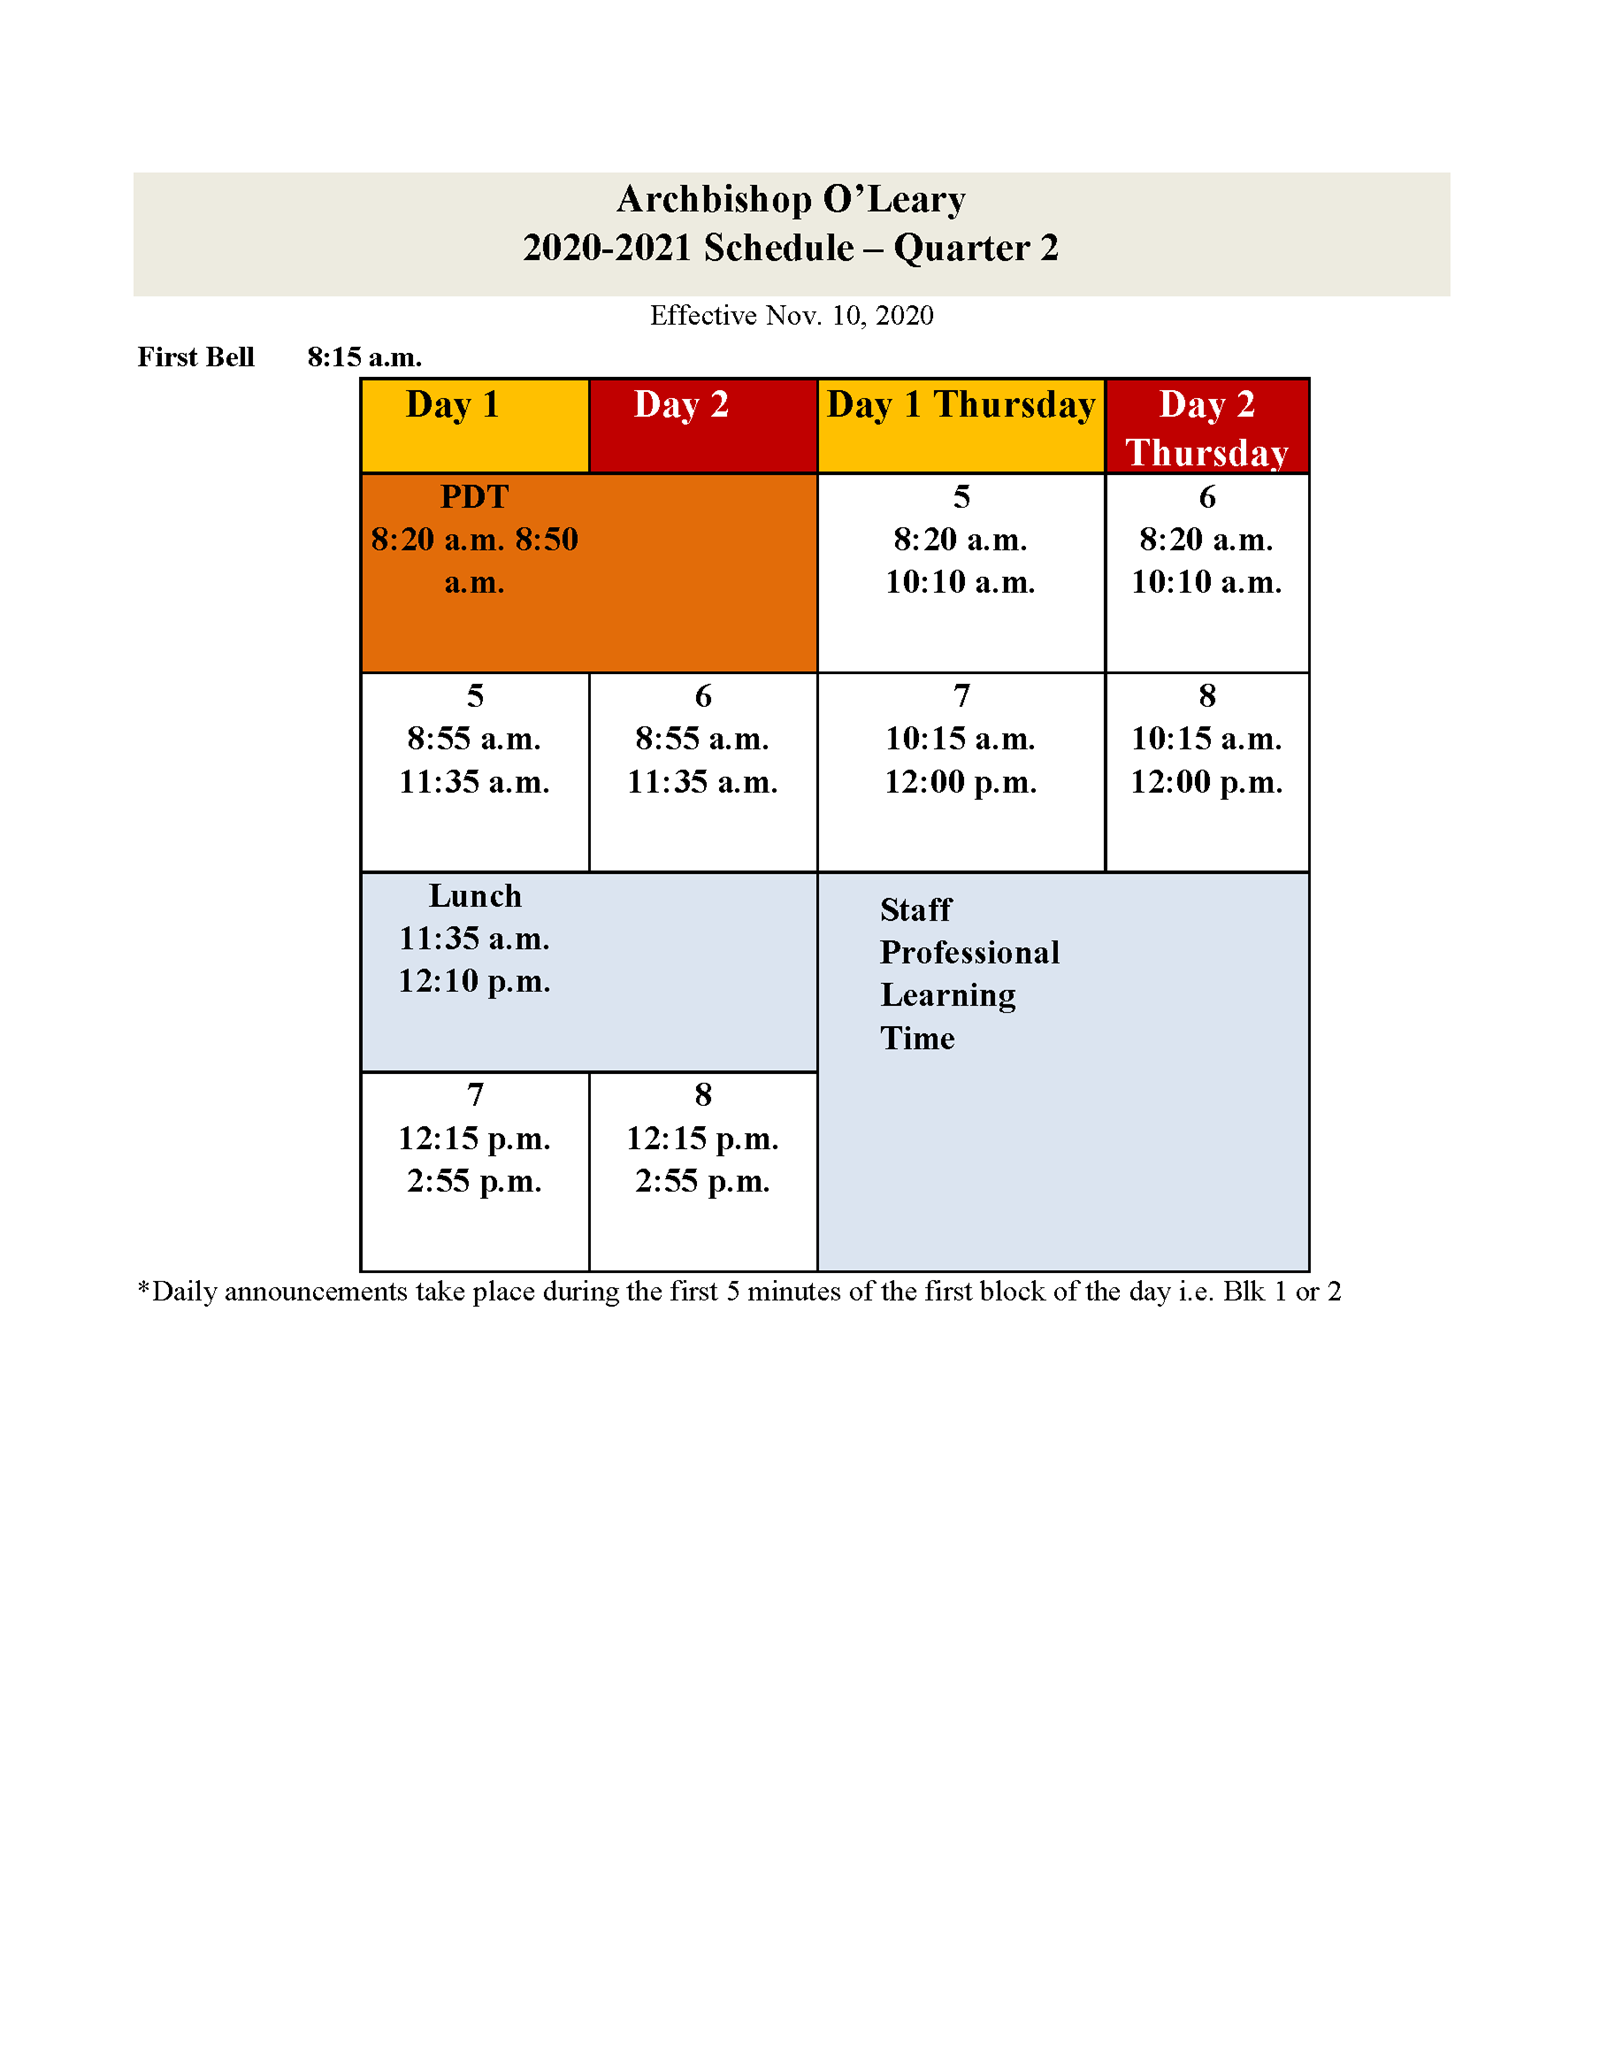 dailySchedule_Page_2.png